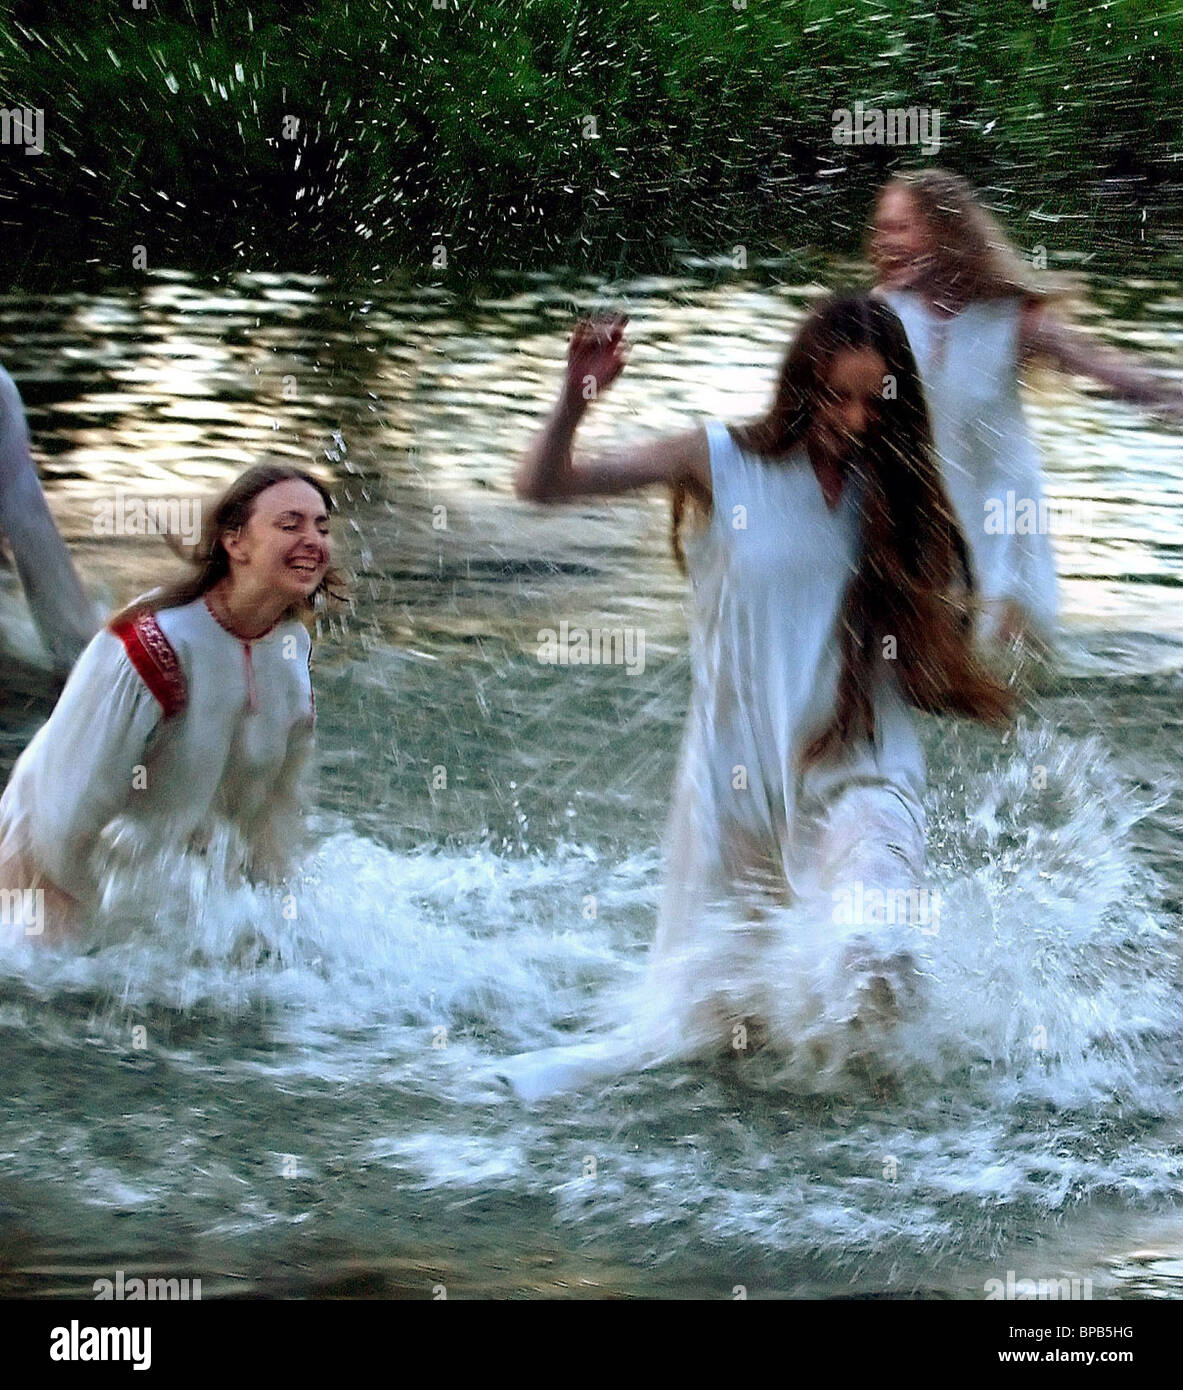 When is the day of Ivan Kupala